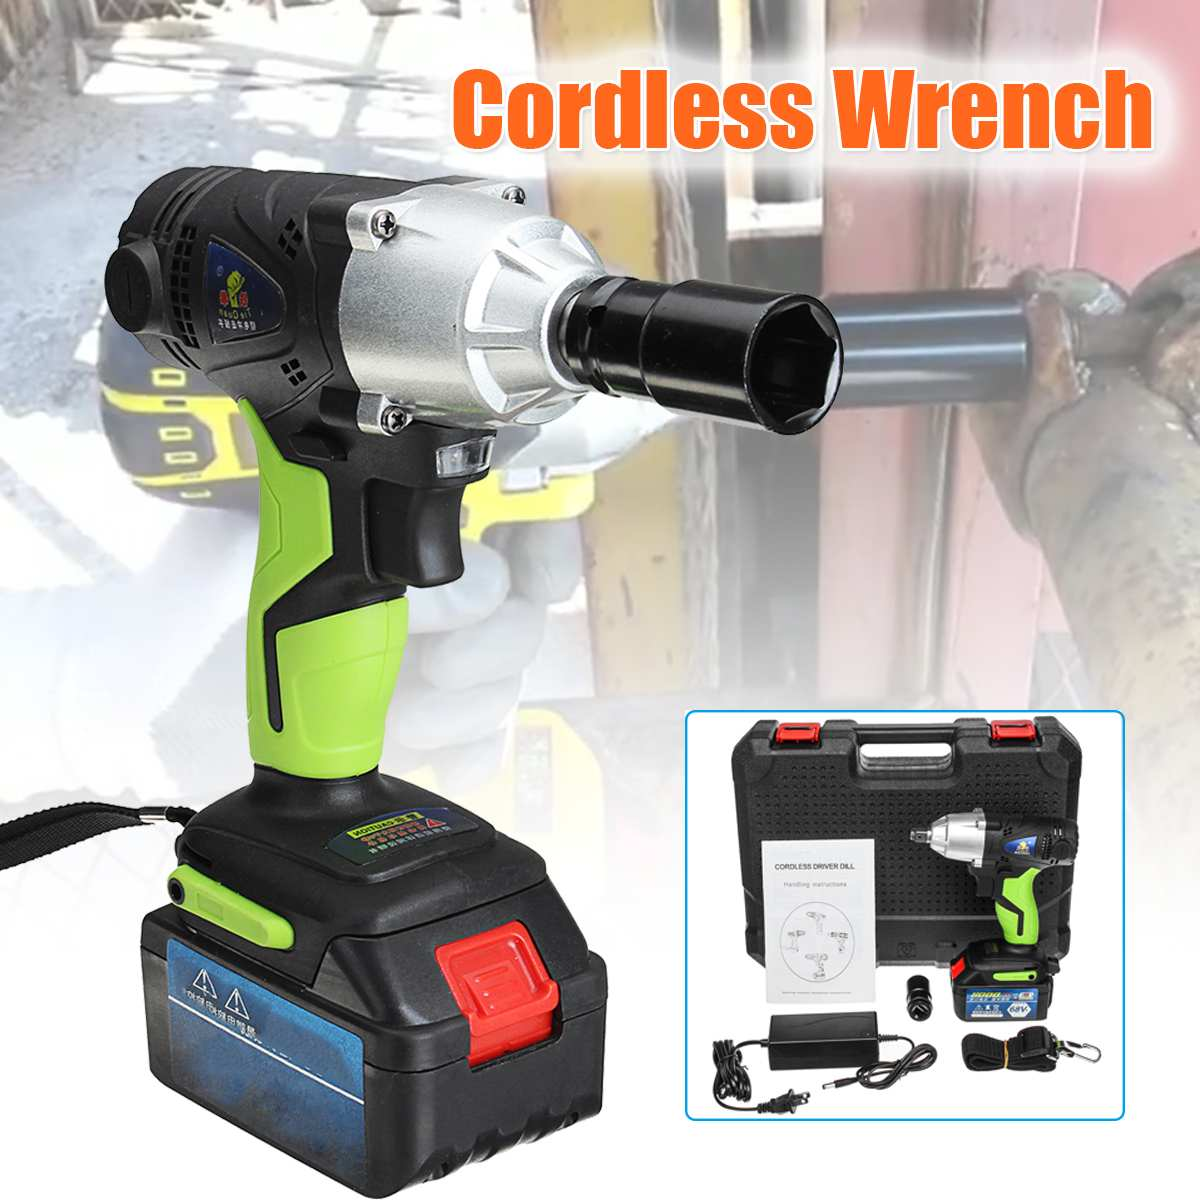 68V 8000mAh Cordless Electric Wrench 420Nm 1/2 Chuck with 1 Batteries 1 Charger Rechargeable Electric Wrench Power Tools68V 8000mAh Cordless Electric Wrench 420Nm 1/2 Chuck with 1 Batteries 1 Charger Rechargeable Electric Wrench Power Tools